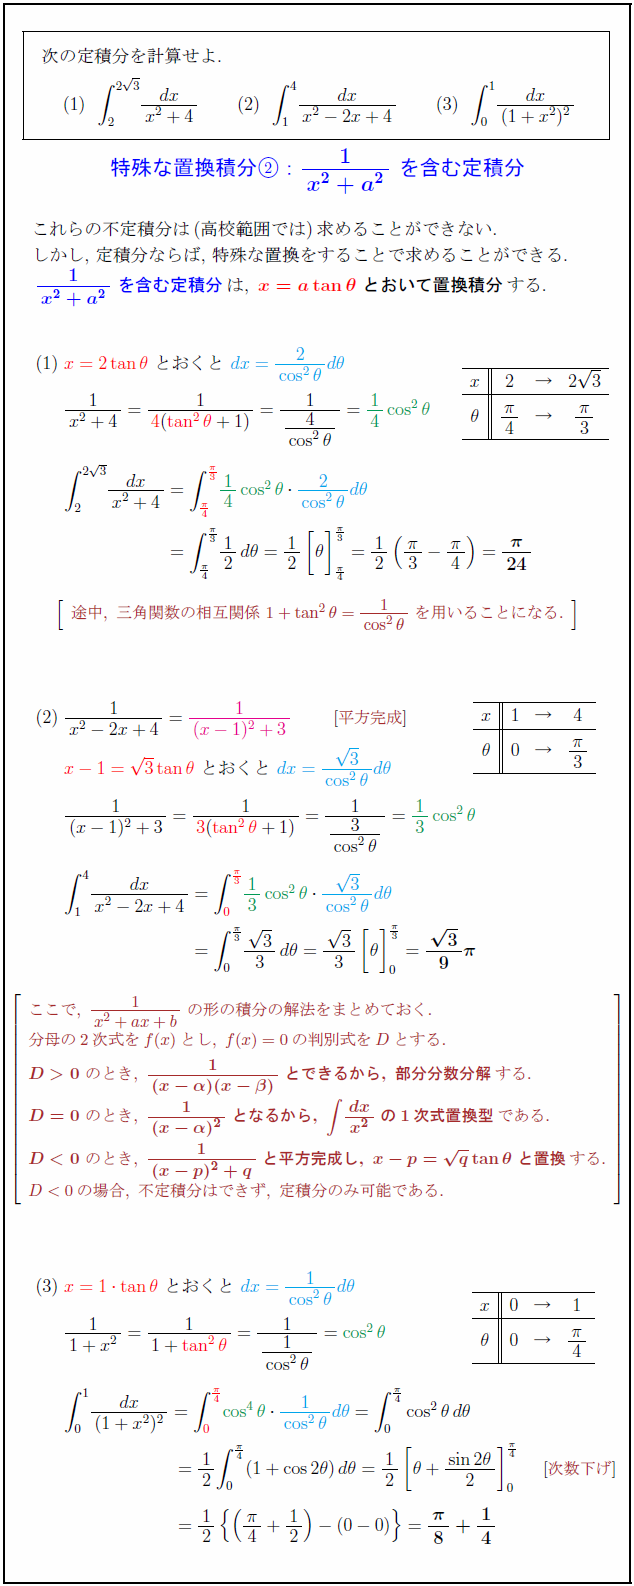 special-substitution2